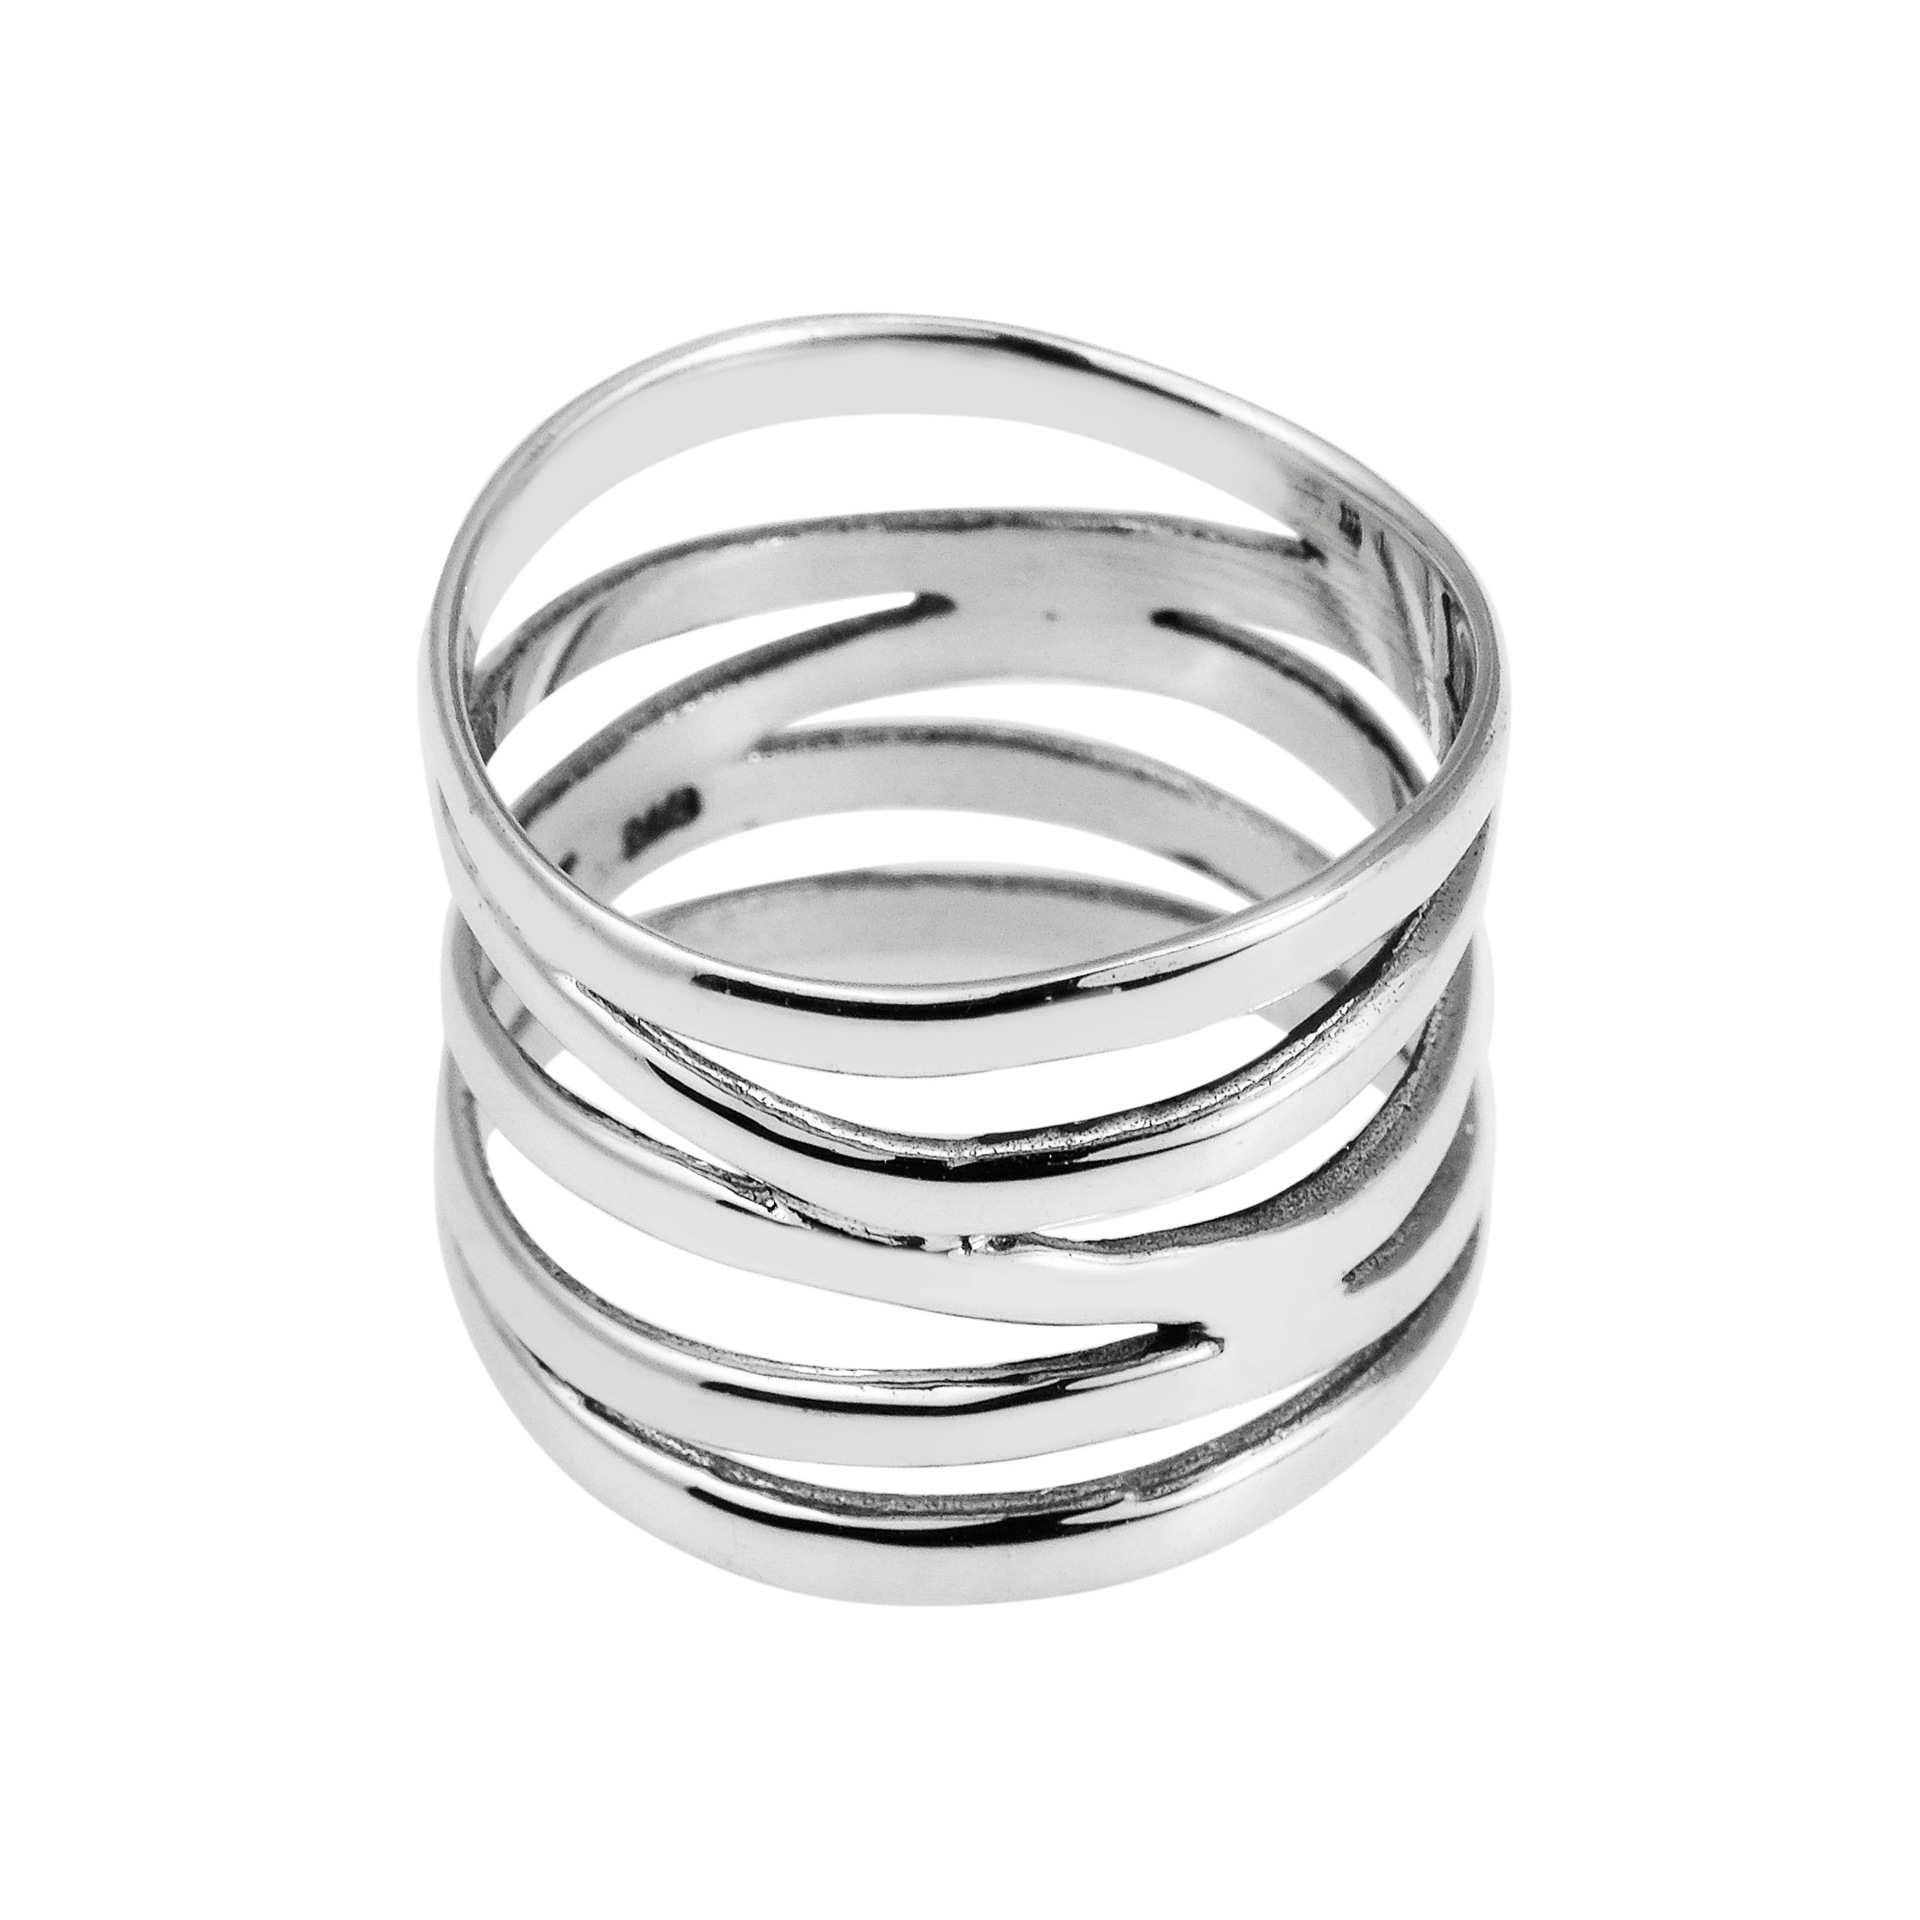 Handmade-Wide-Five-Band-Coil-W